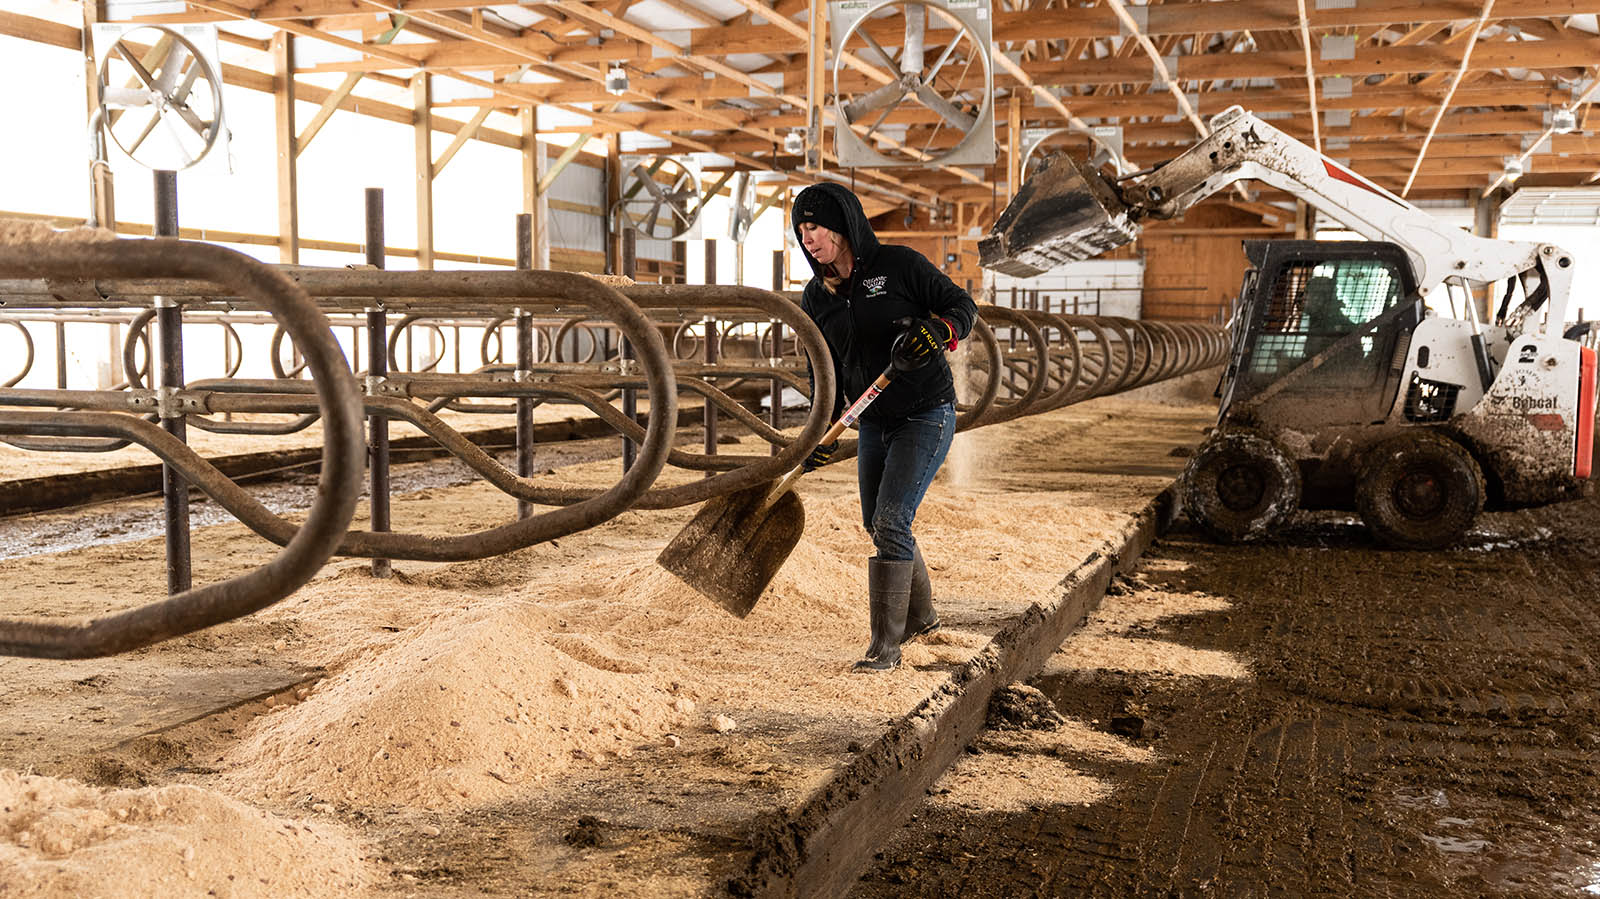 Kristina spreads out the bedding in the freestalls.